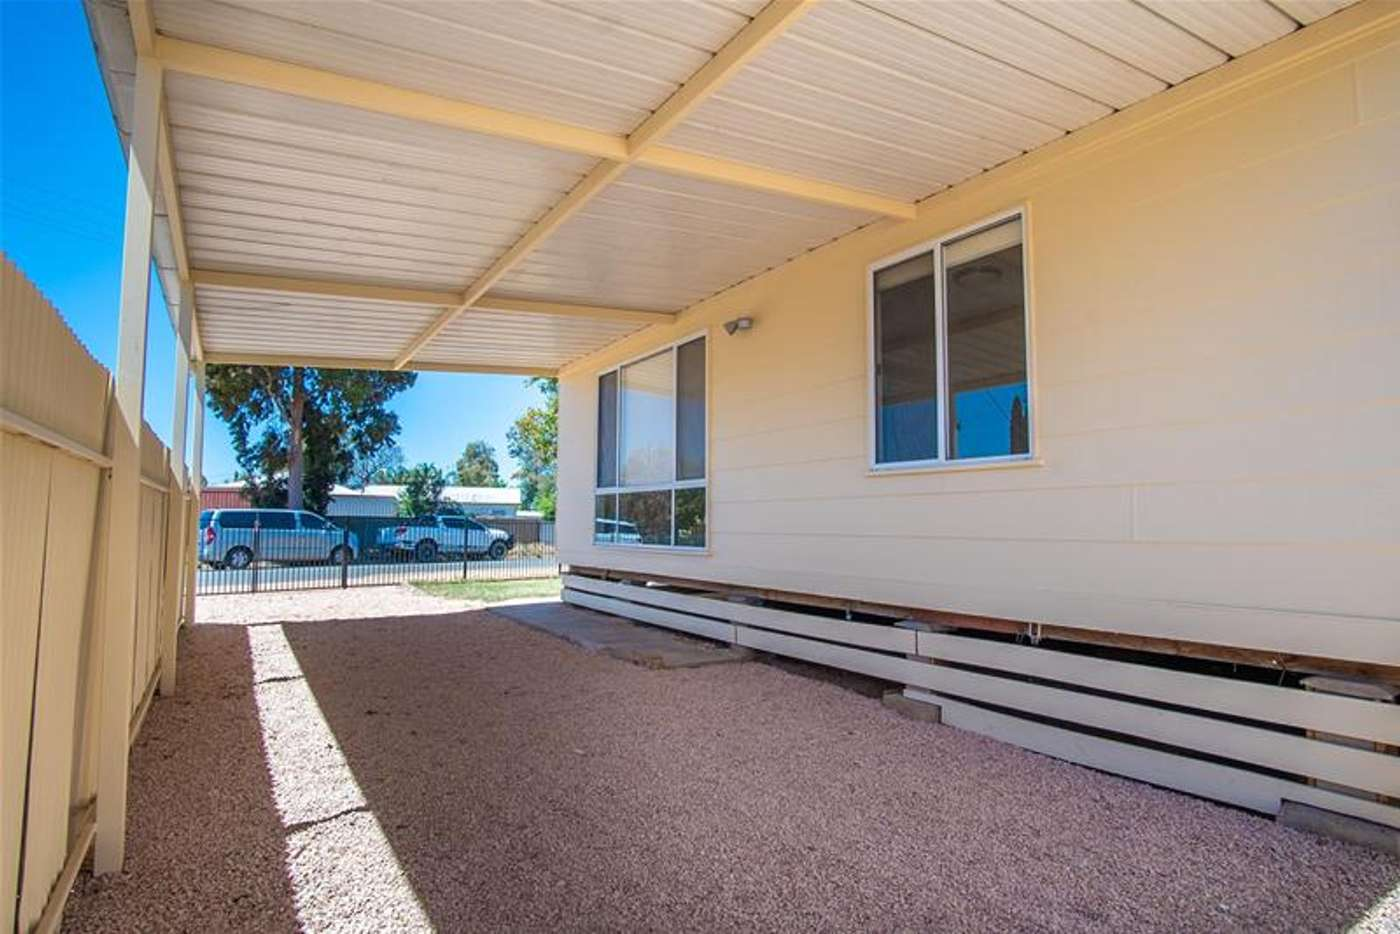 Fifth view of Homely house listing, 9 Mead Street, Merbein VIC 3505